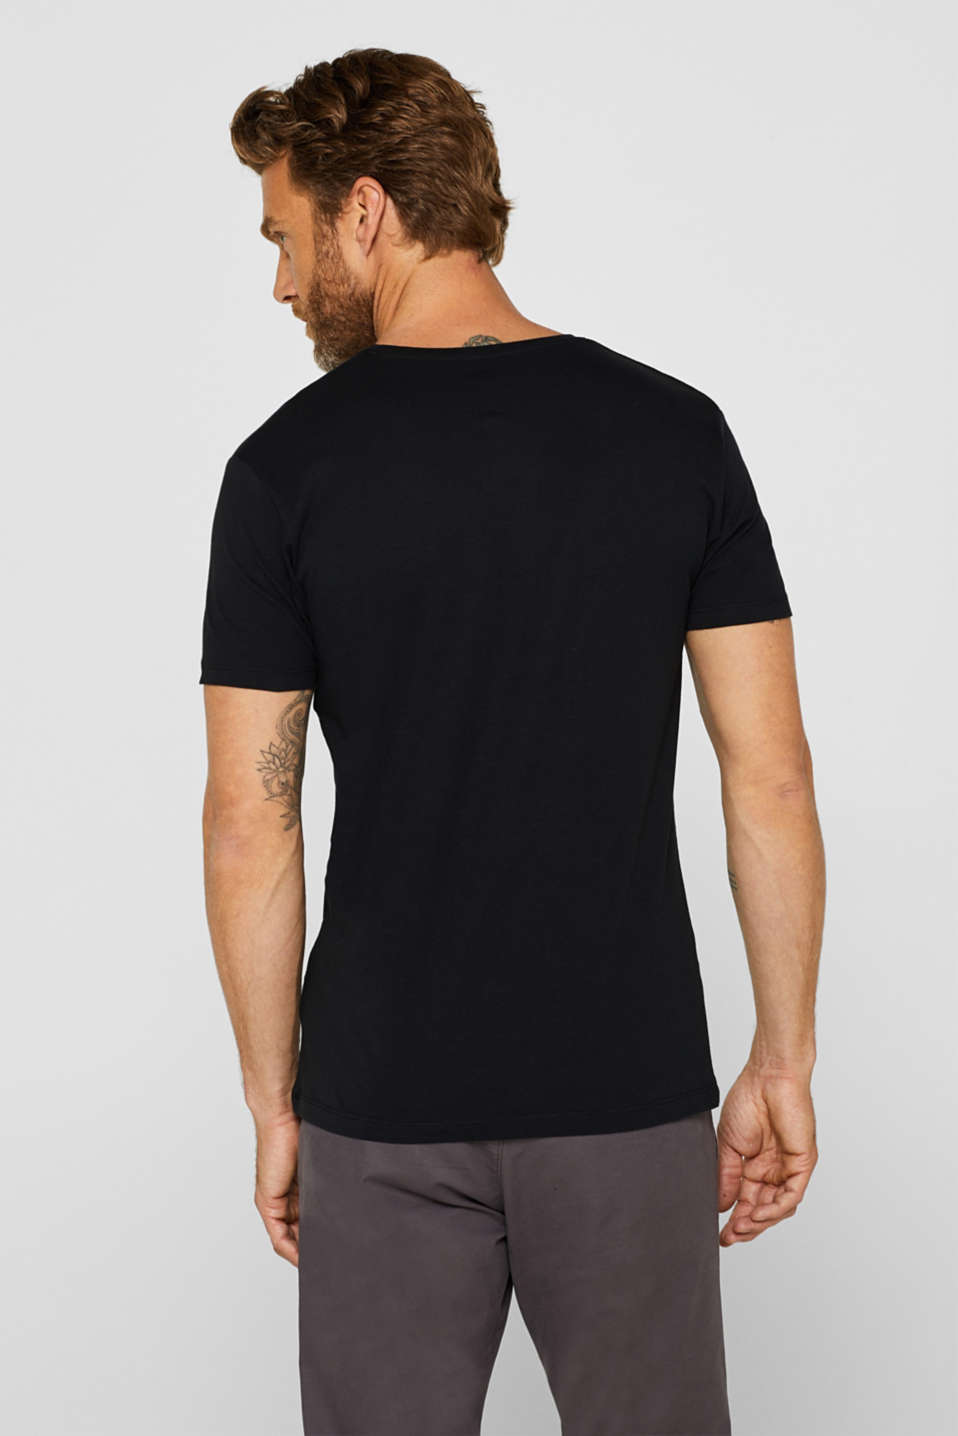 Double pack of jersey tees containing organic cotton, BLACK, detail image number 3